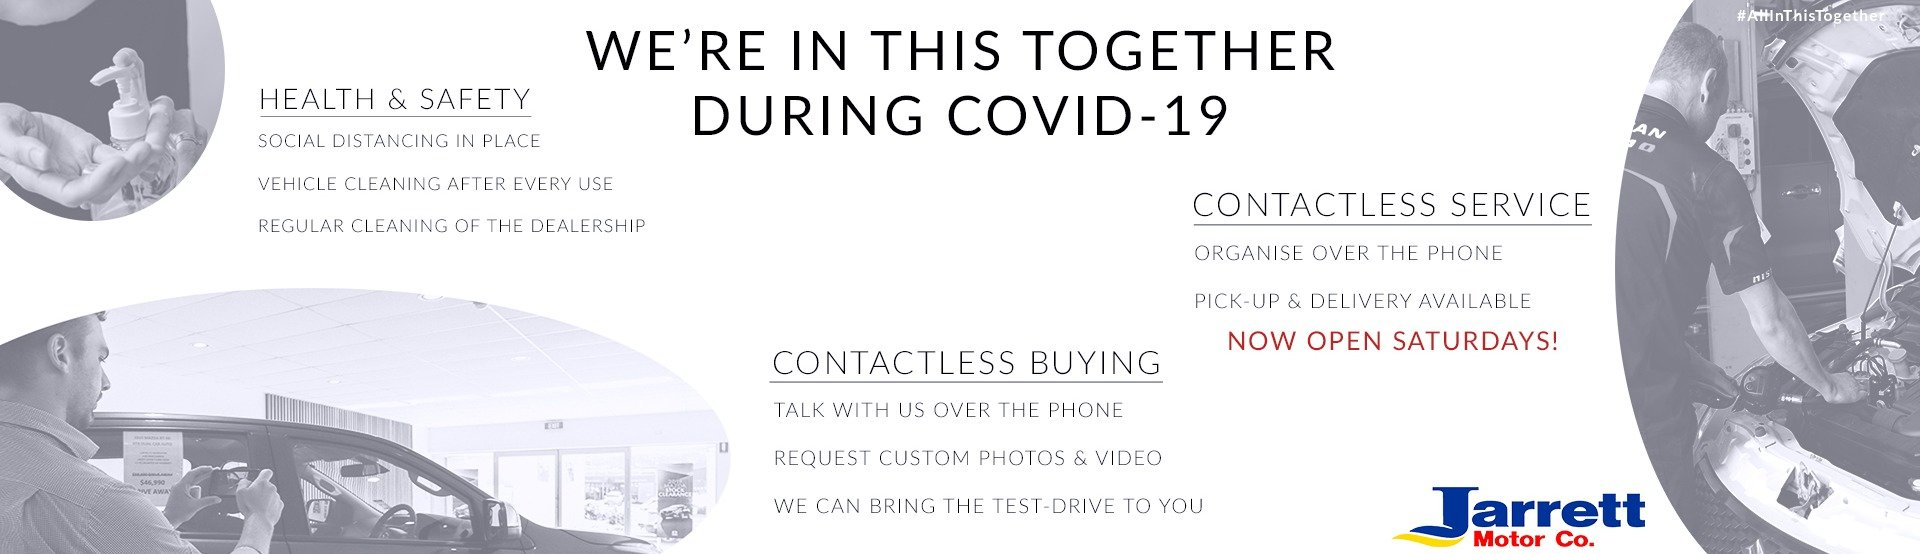 We're In This Together During Covid-19